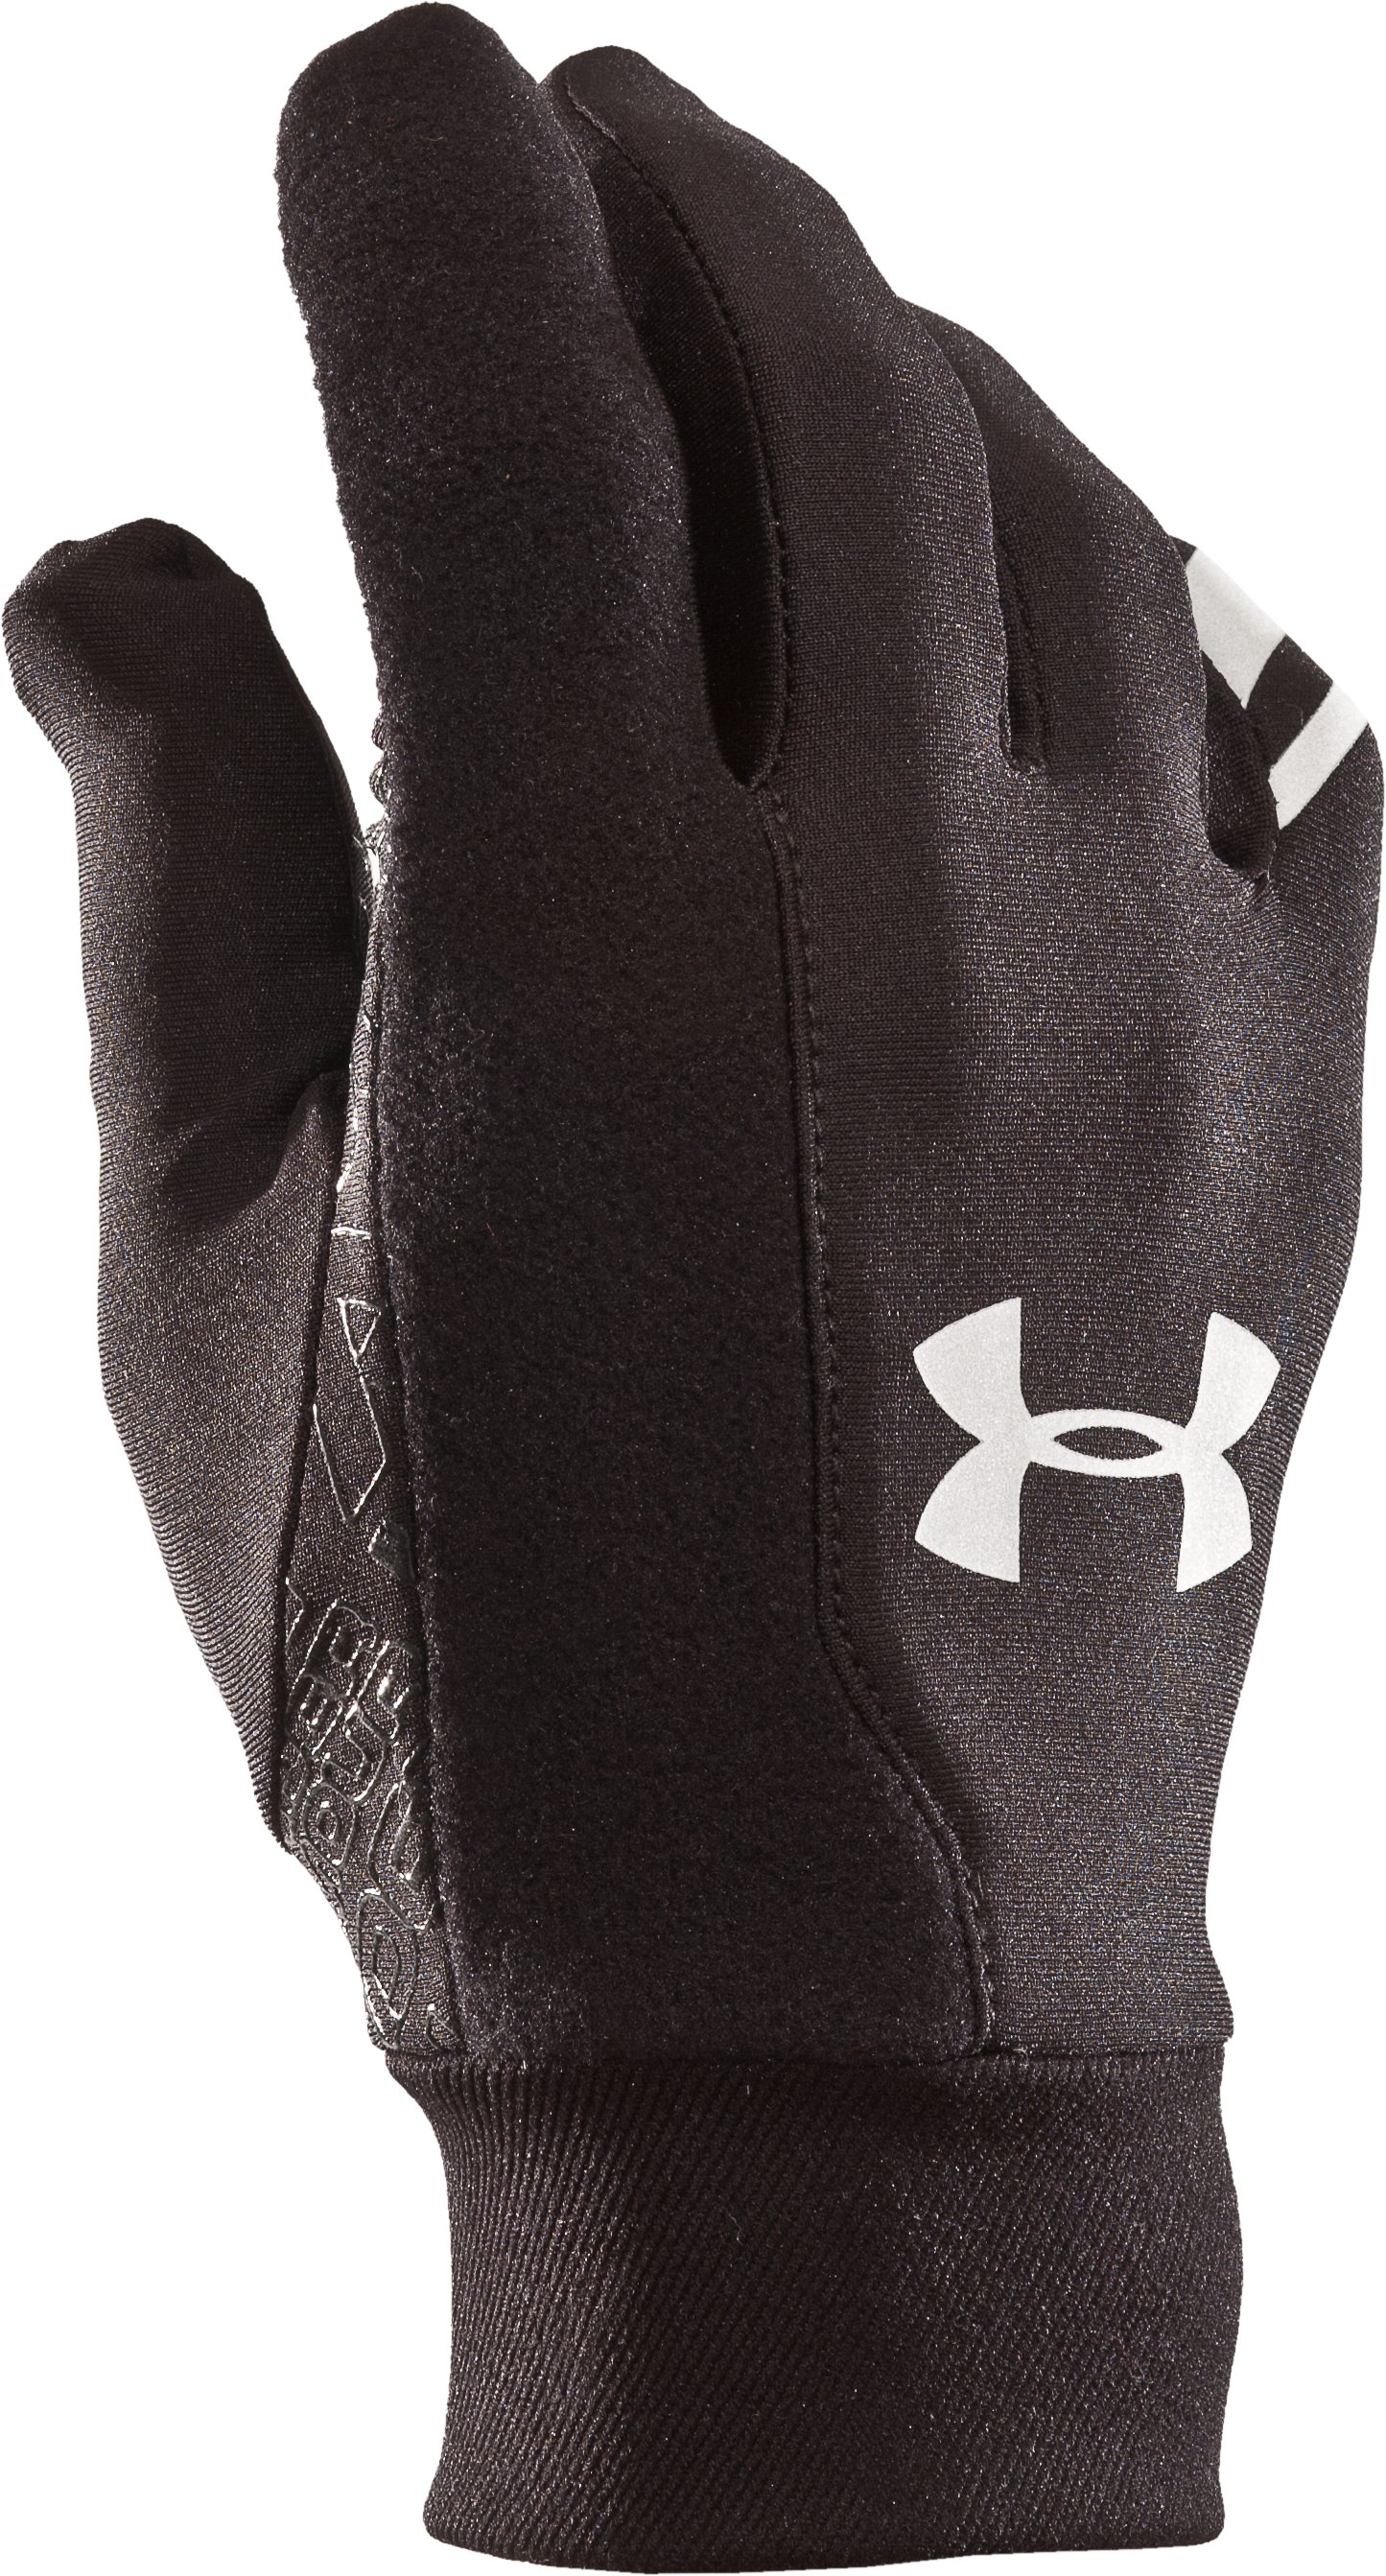 ColdGear® Liner Gloves, Black , zoomed image